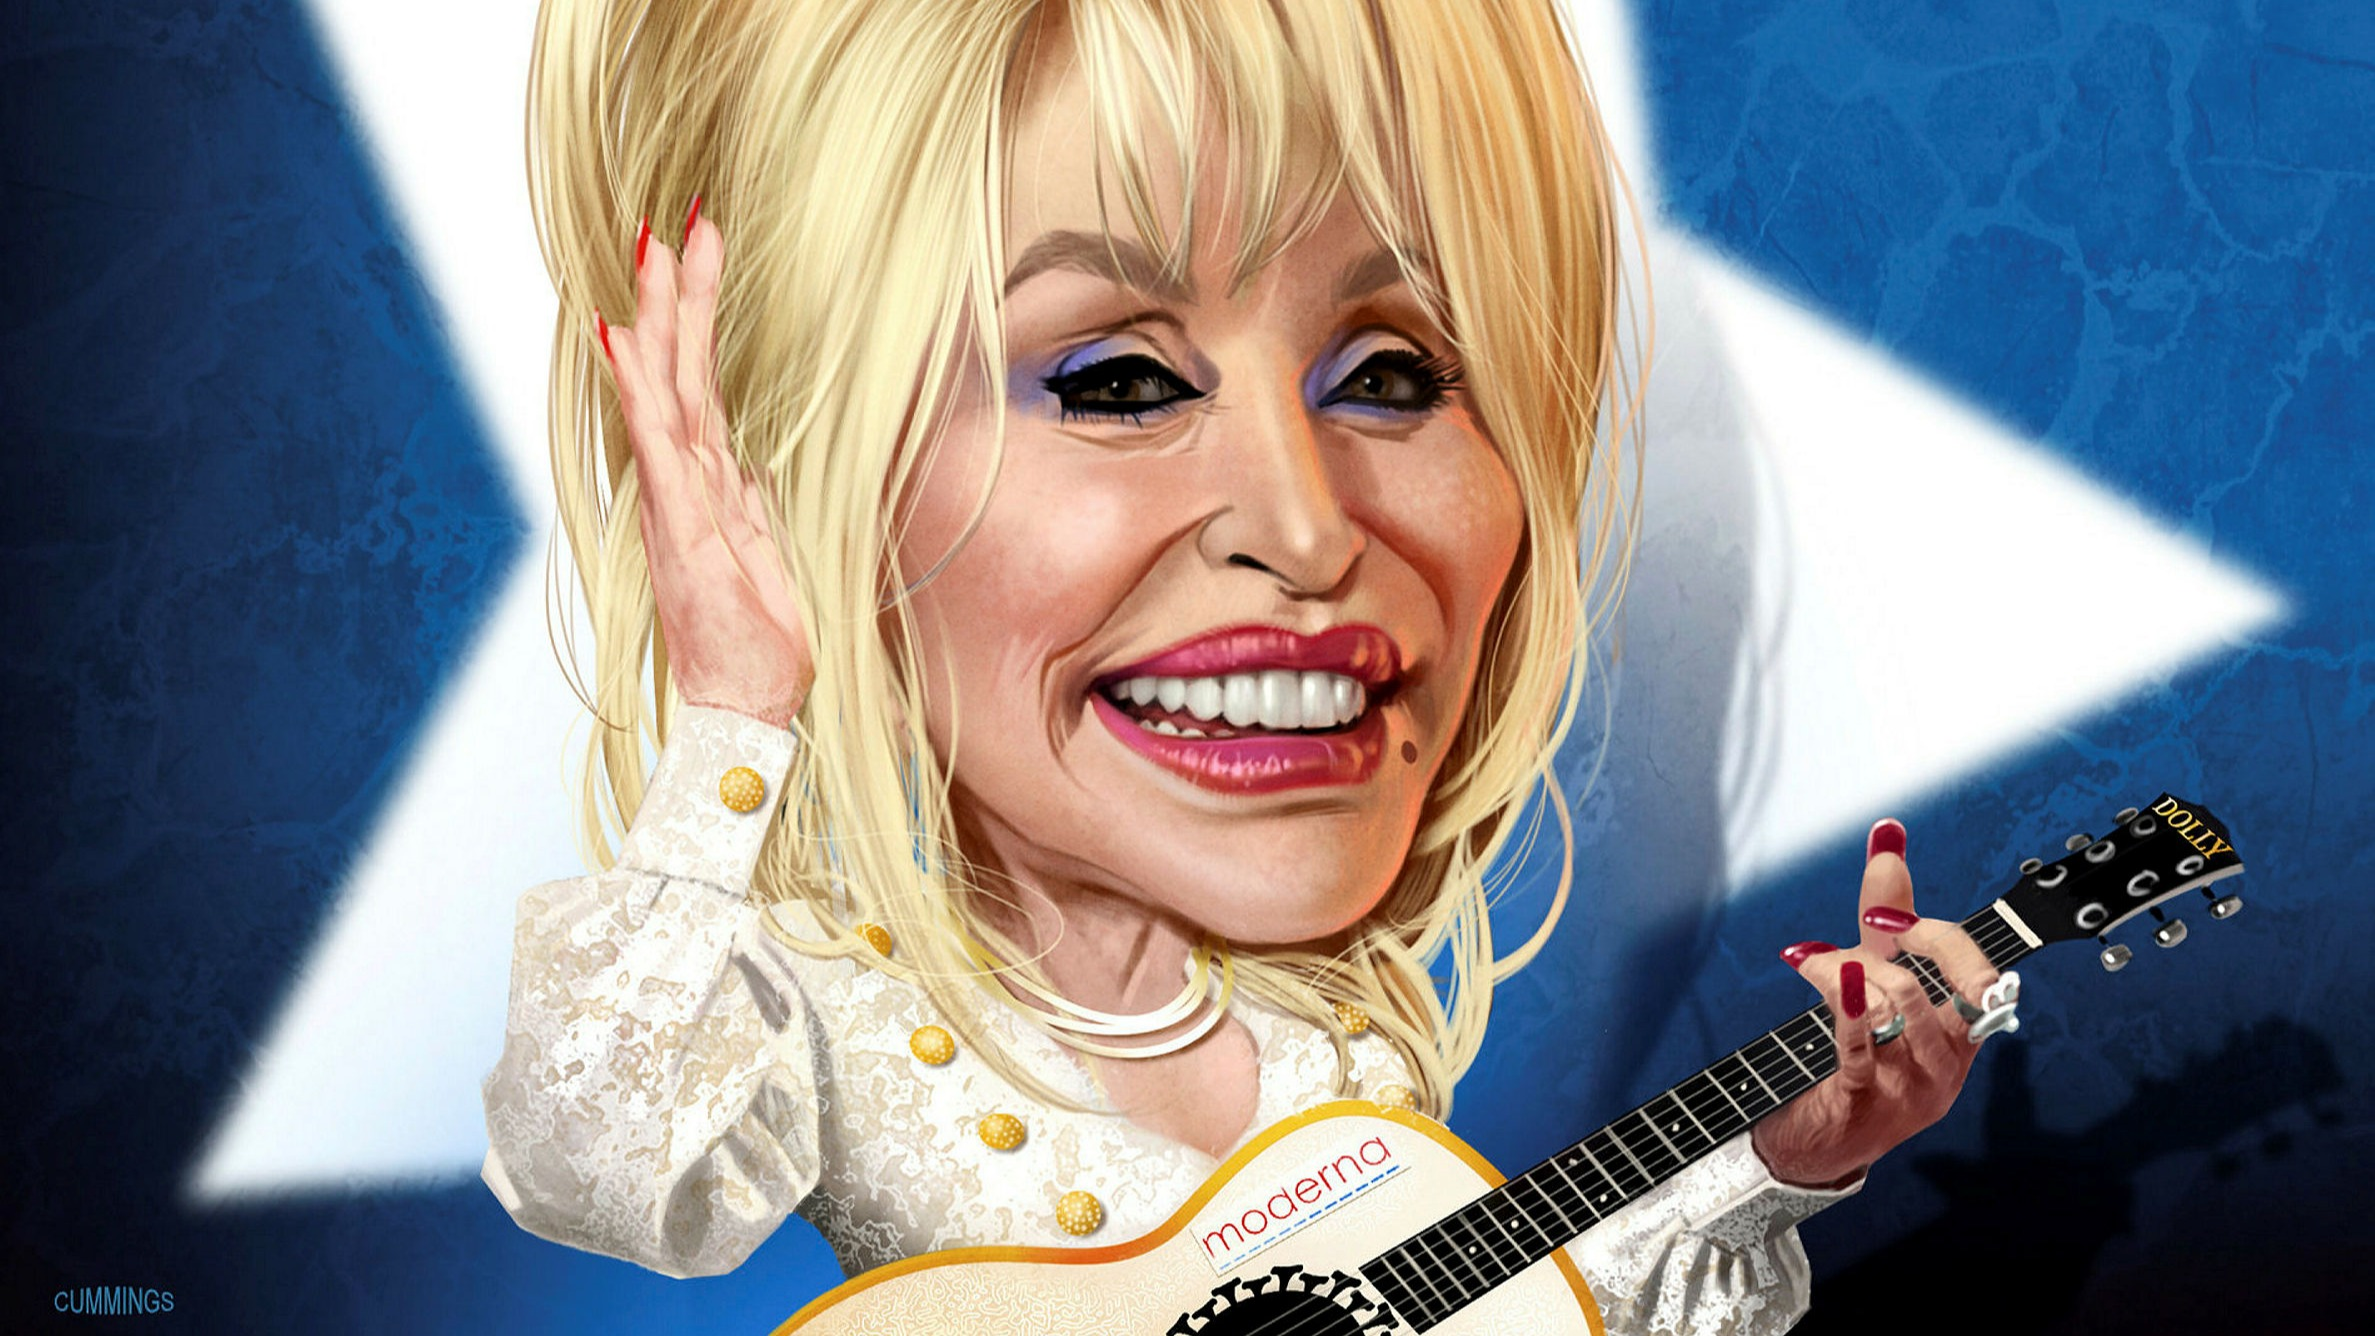 Dolly Parton The Country Singer Trying To Cure The World S Ills Financial Times